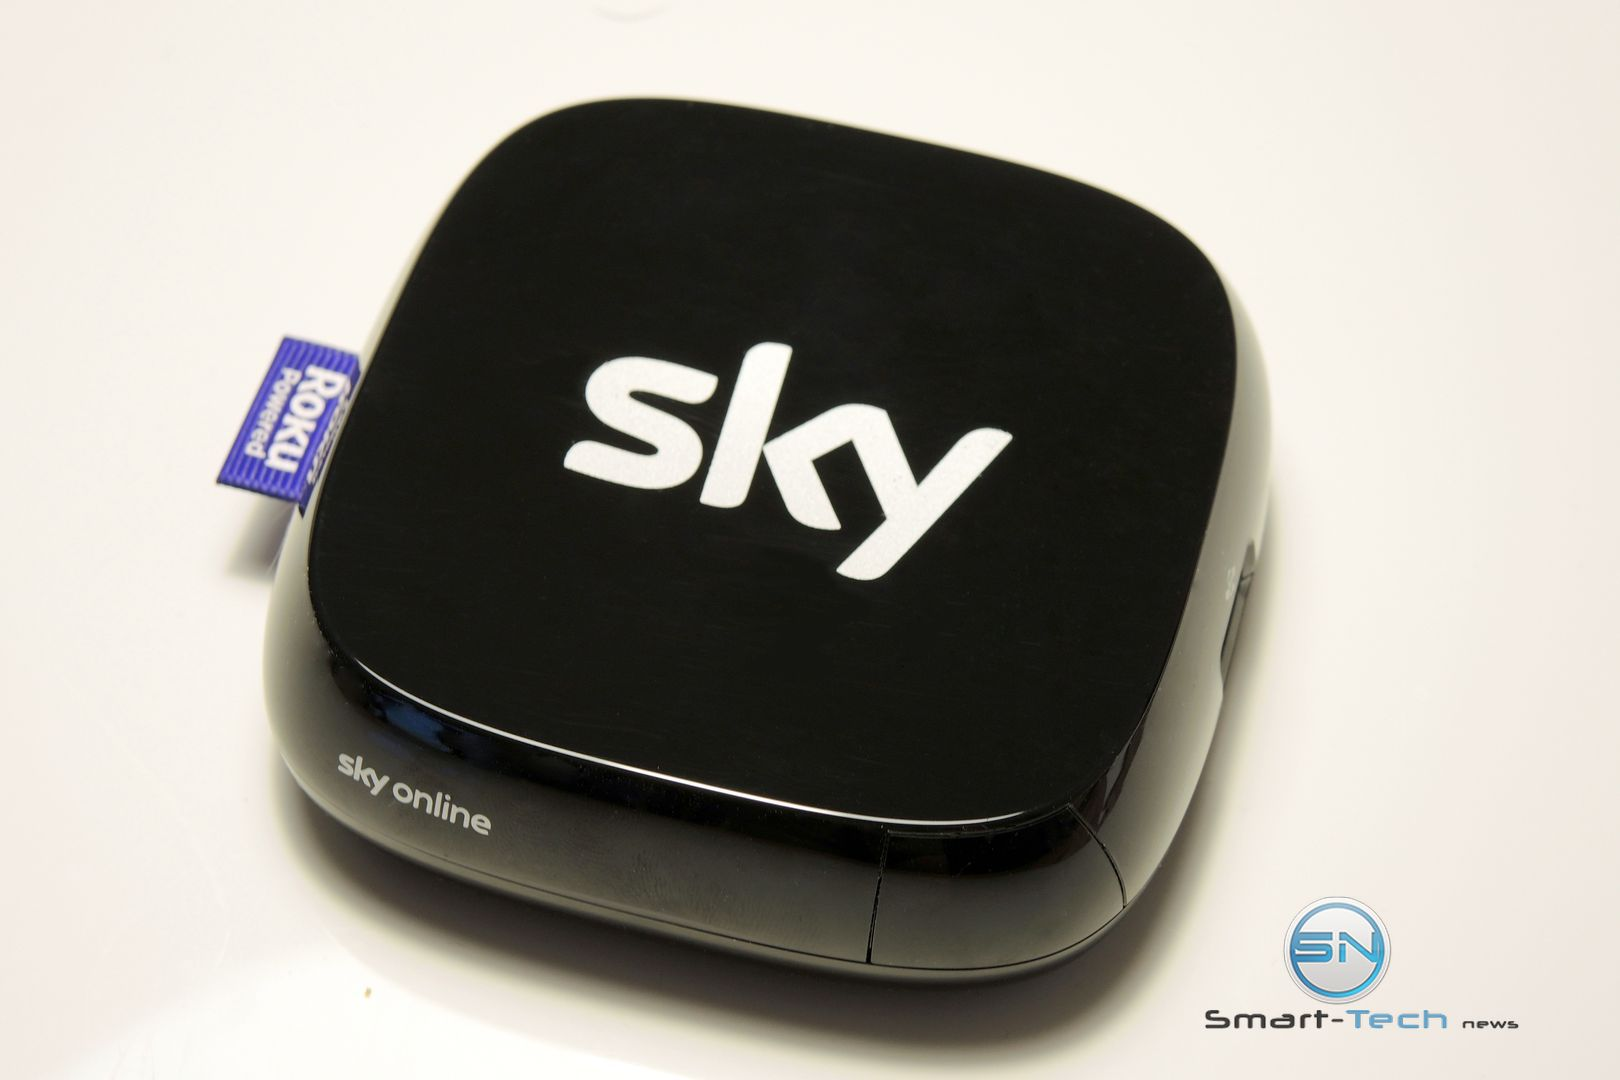 Sky Tickets – Sky Online Box im Test